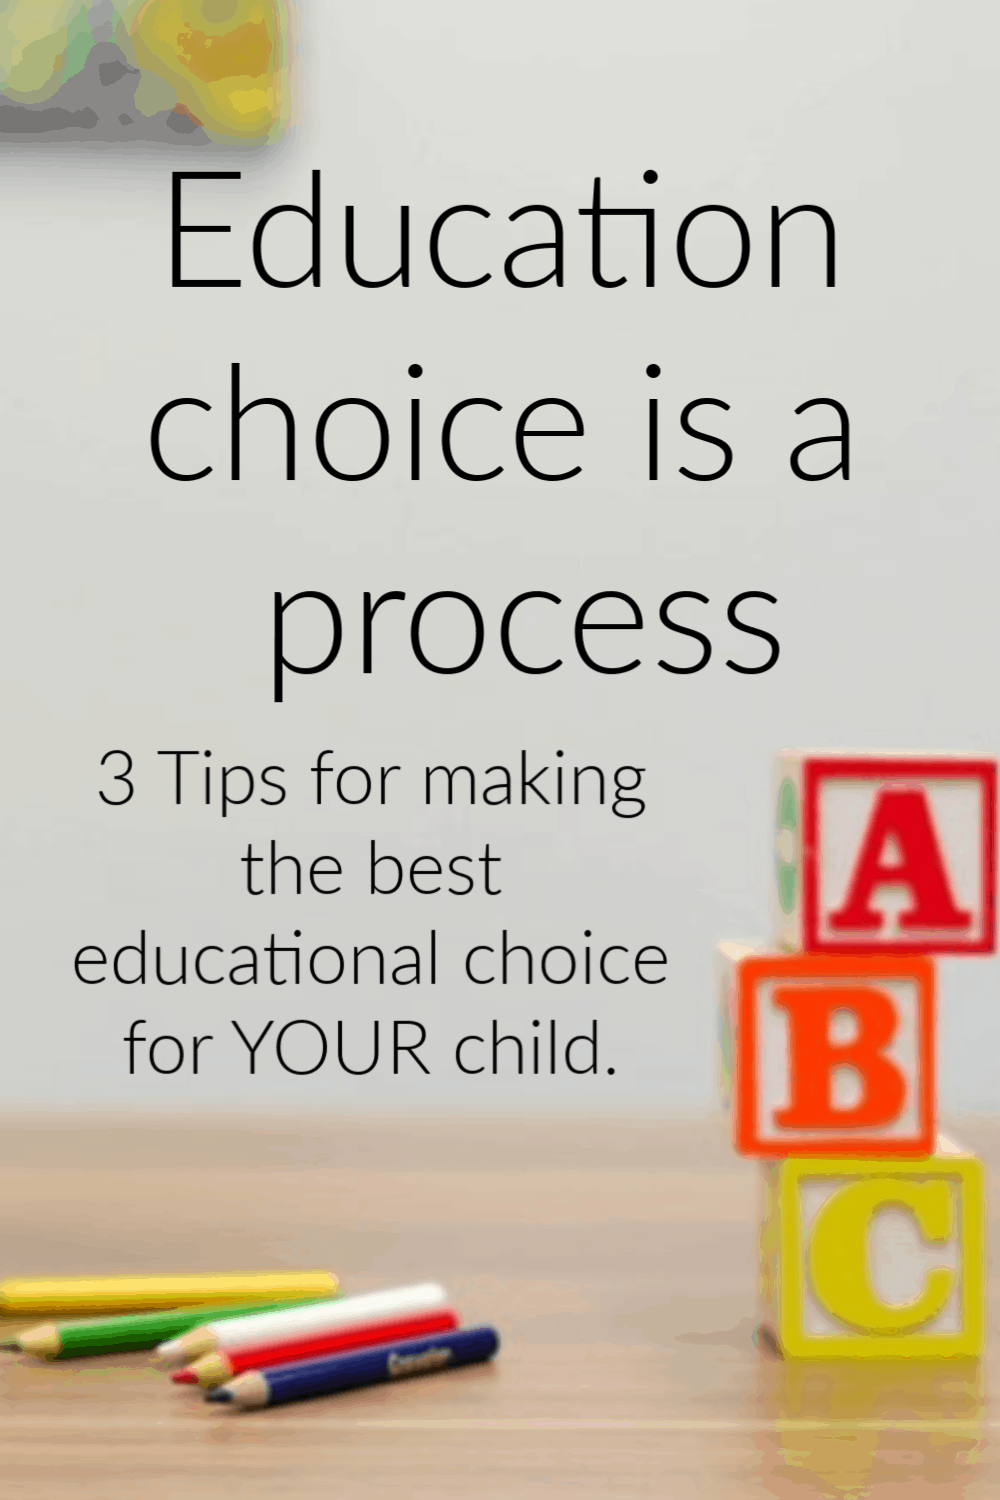 3 Things I've learned about having enough education choice. Support for moms doesn't have to be hard to find with this comprehensive guide filled with parenting resources for moms you won't want to miss.